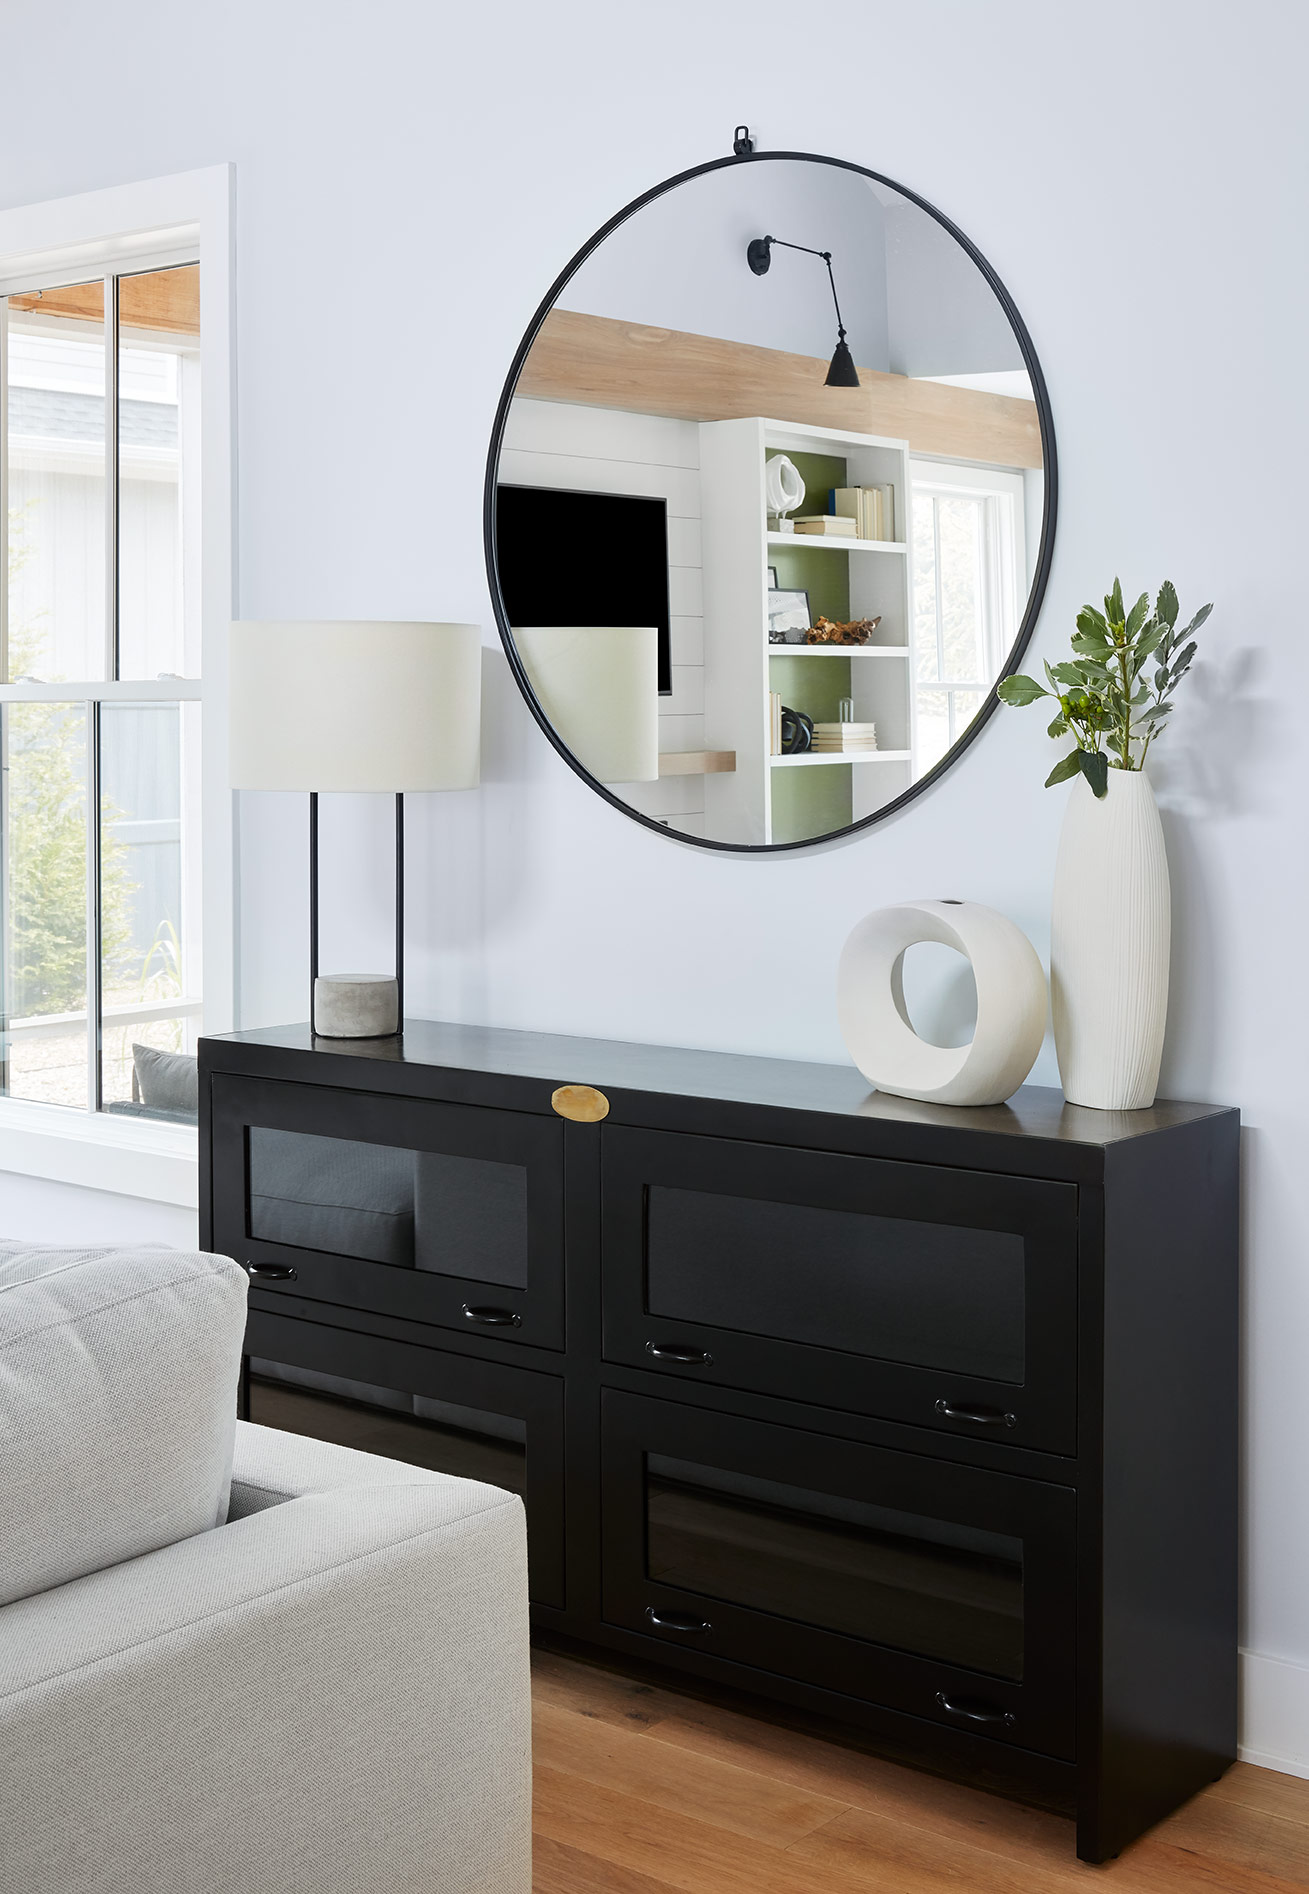 A black metal credenza and oversized mirror provide additional storage and add some contrast to the room.